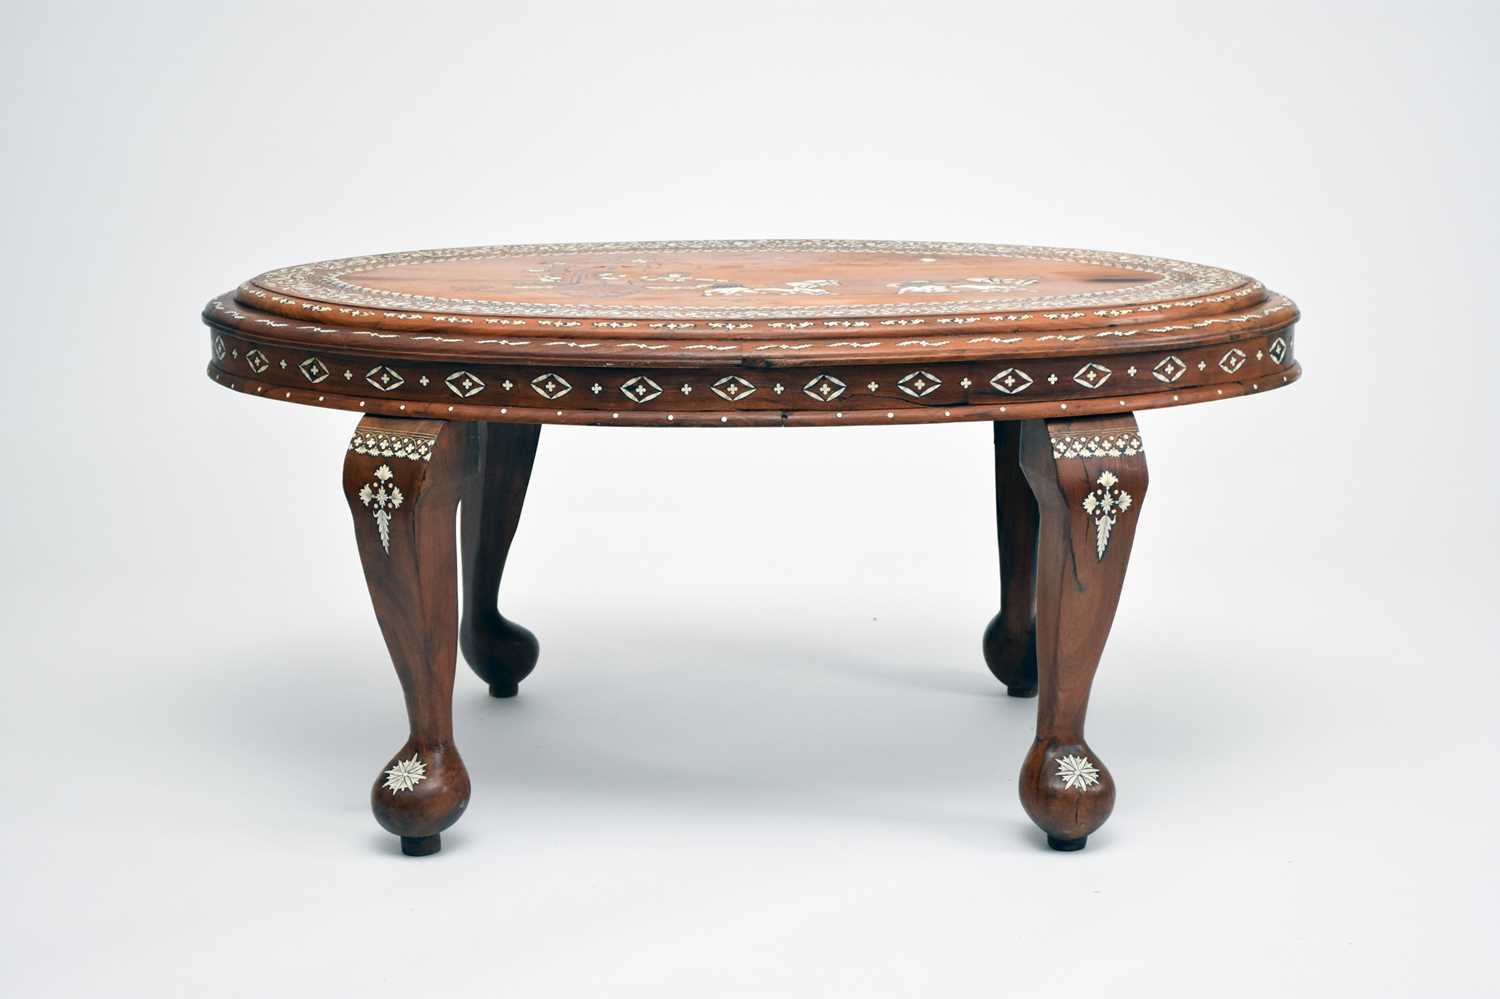 A good, late 19th/early 20th century Indian, teak occasional table, profusely inlaid